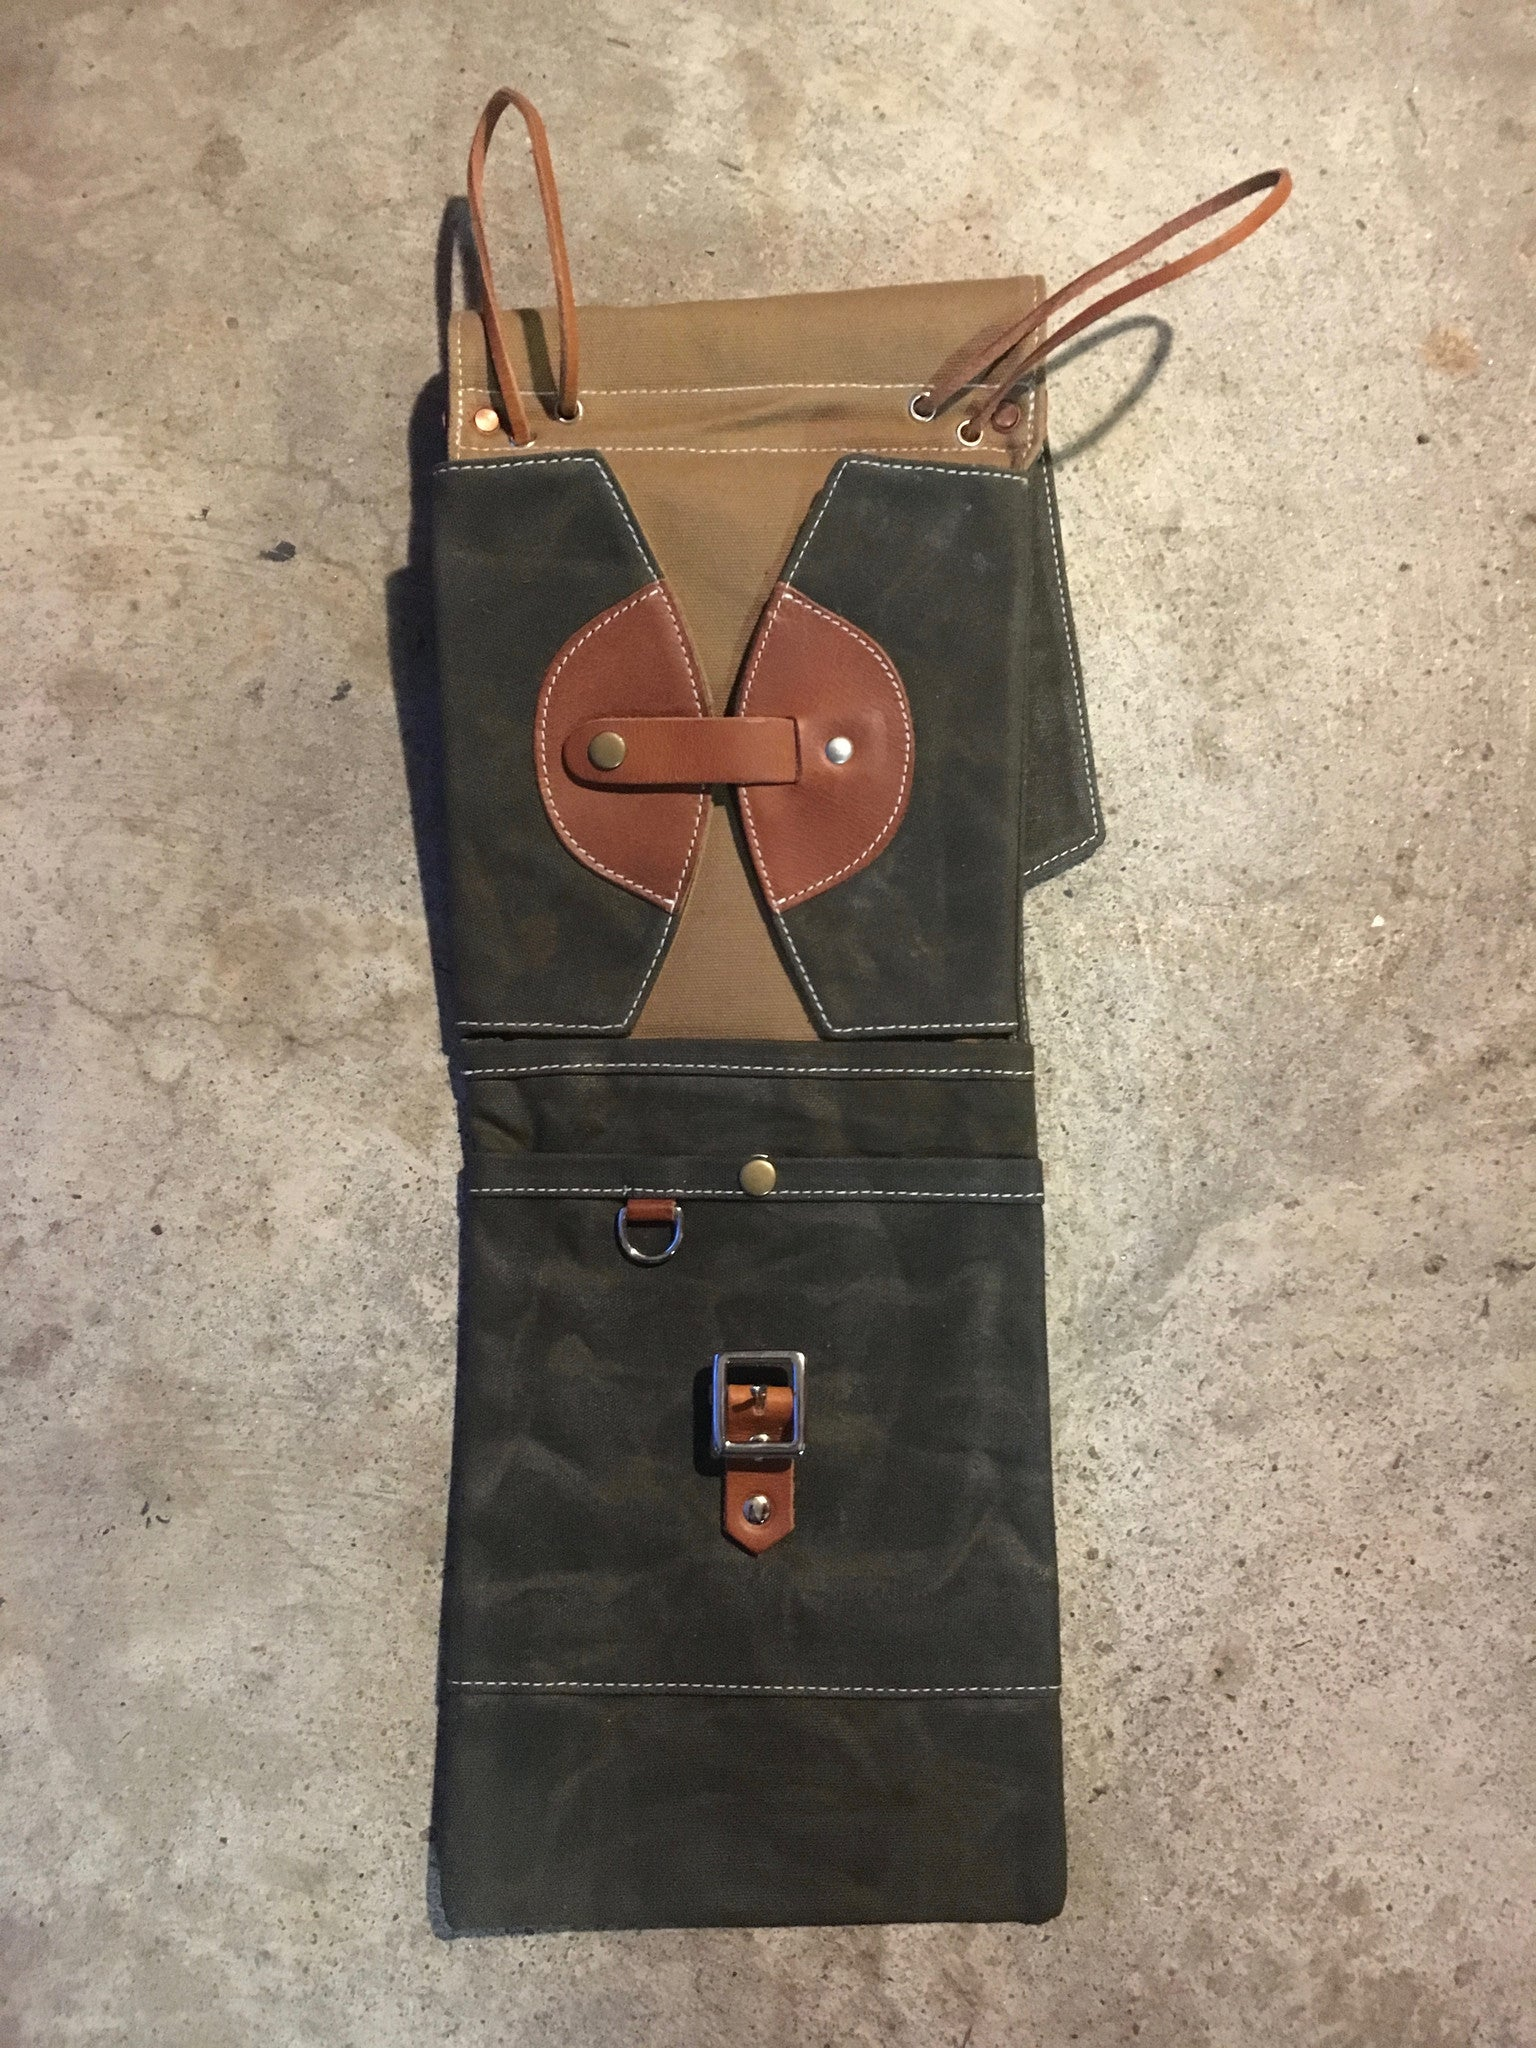 Waxed Canvas Compact Drum Stick Bag – TACKLE Instrument Supply Co. 3bcac188a0dfa